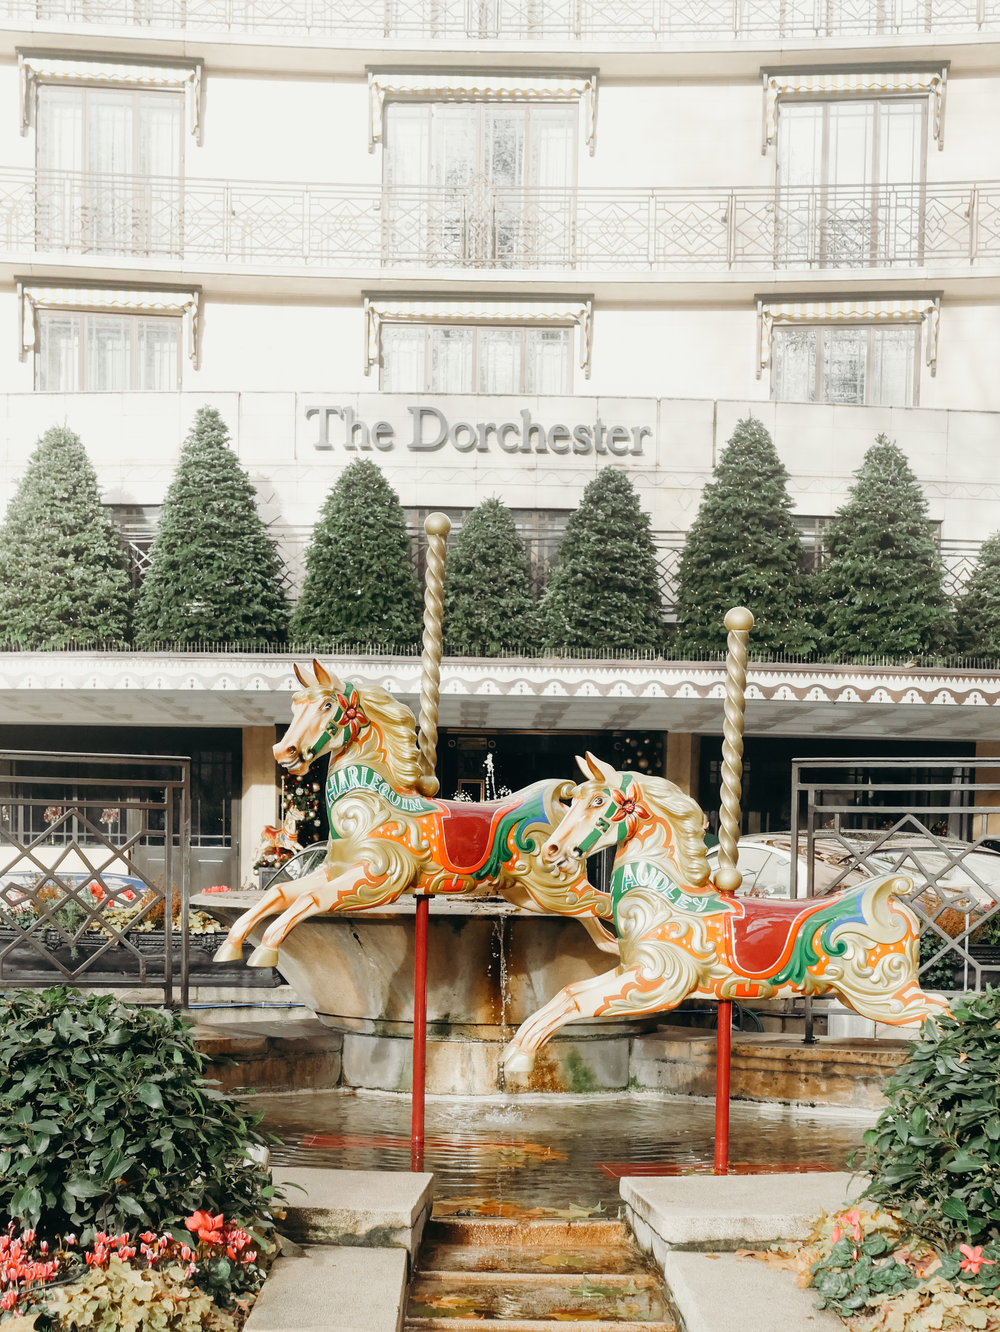 6 Things to Do in London at Christmastime - The Dorchester